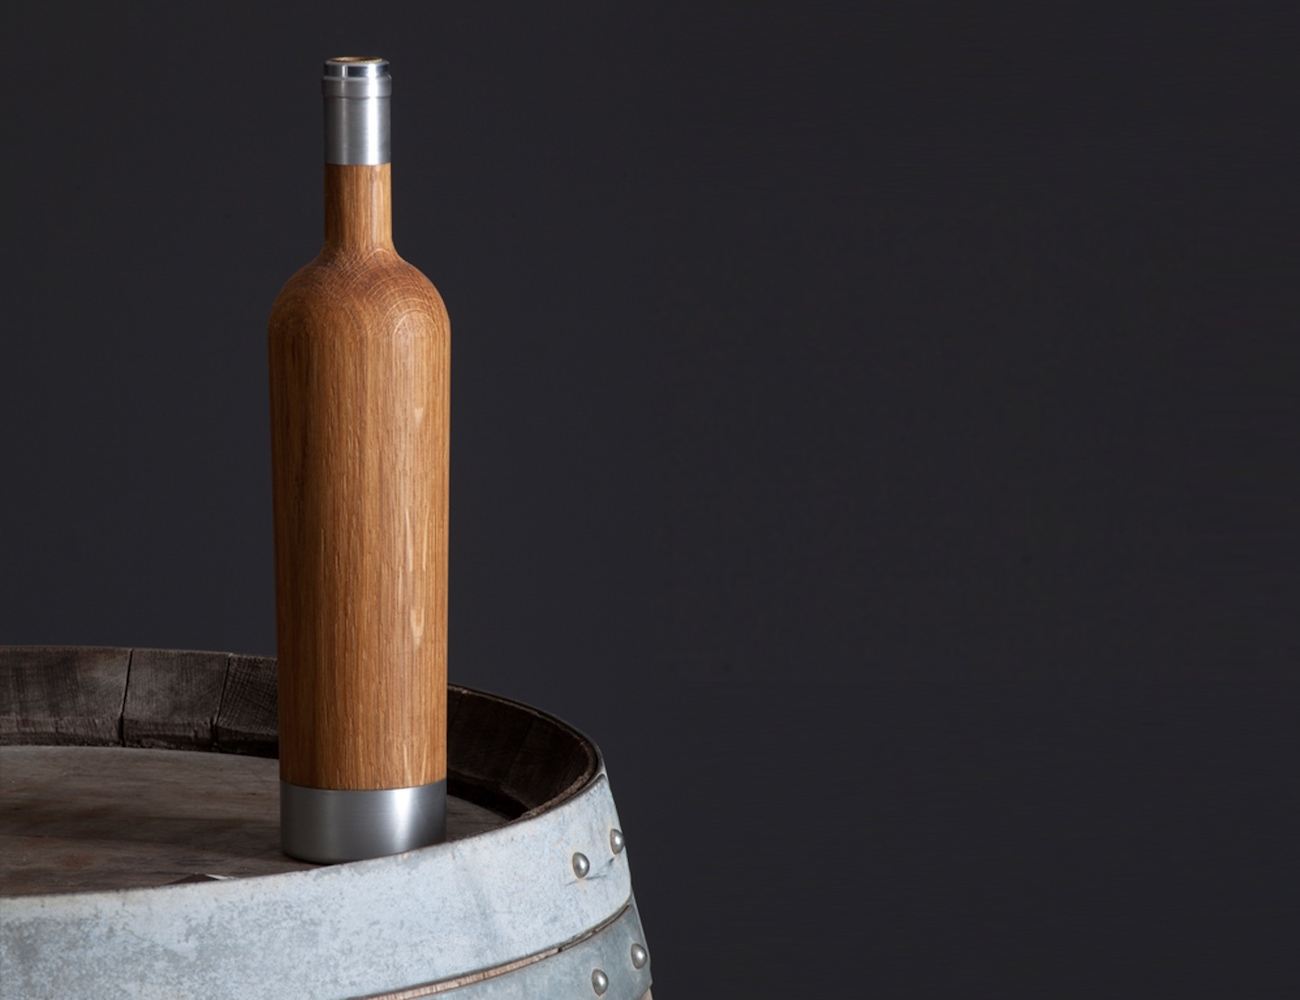 Pinocchio Barrique Wine Aging Bottle